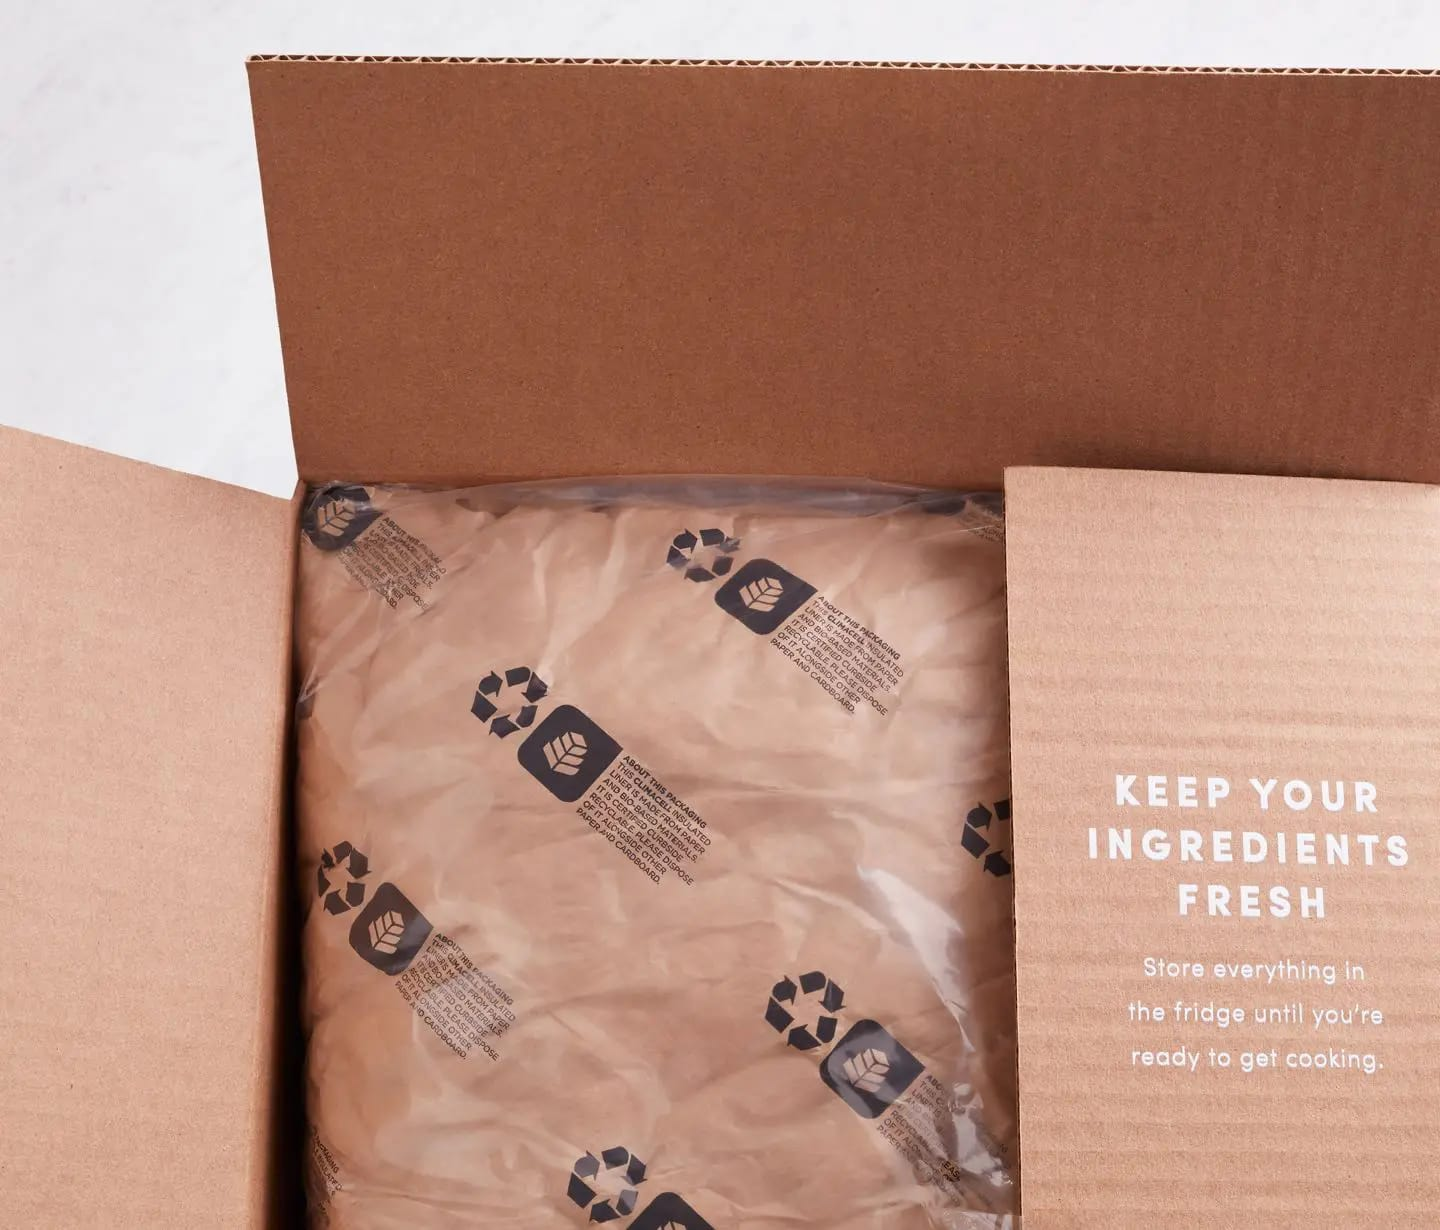 Thoughtful packaging